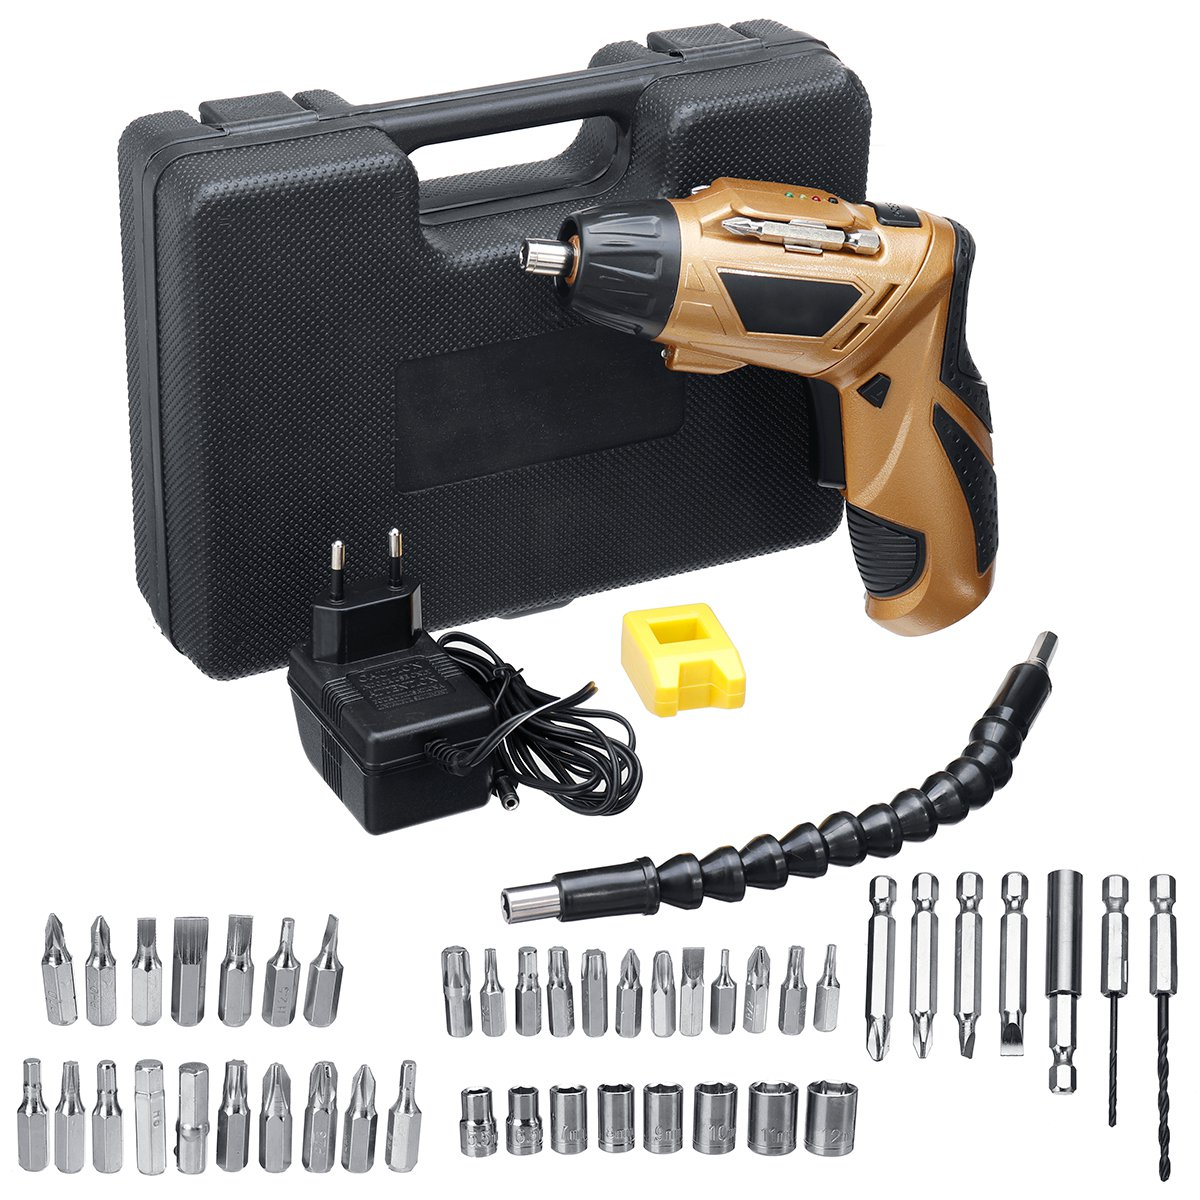 45 IN 1 4.8V Electric Screwdriver Drill Kit Rechargeable Cordless Power Repairing Tools Set